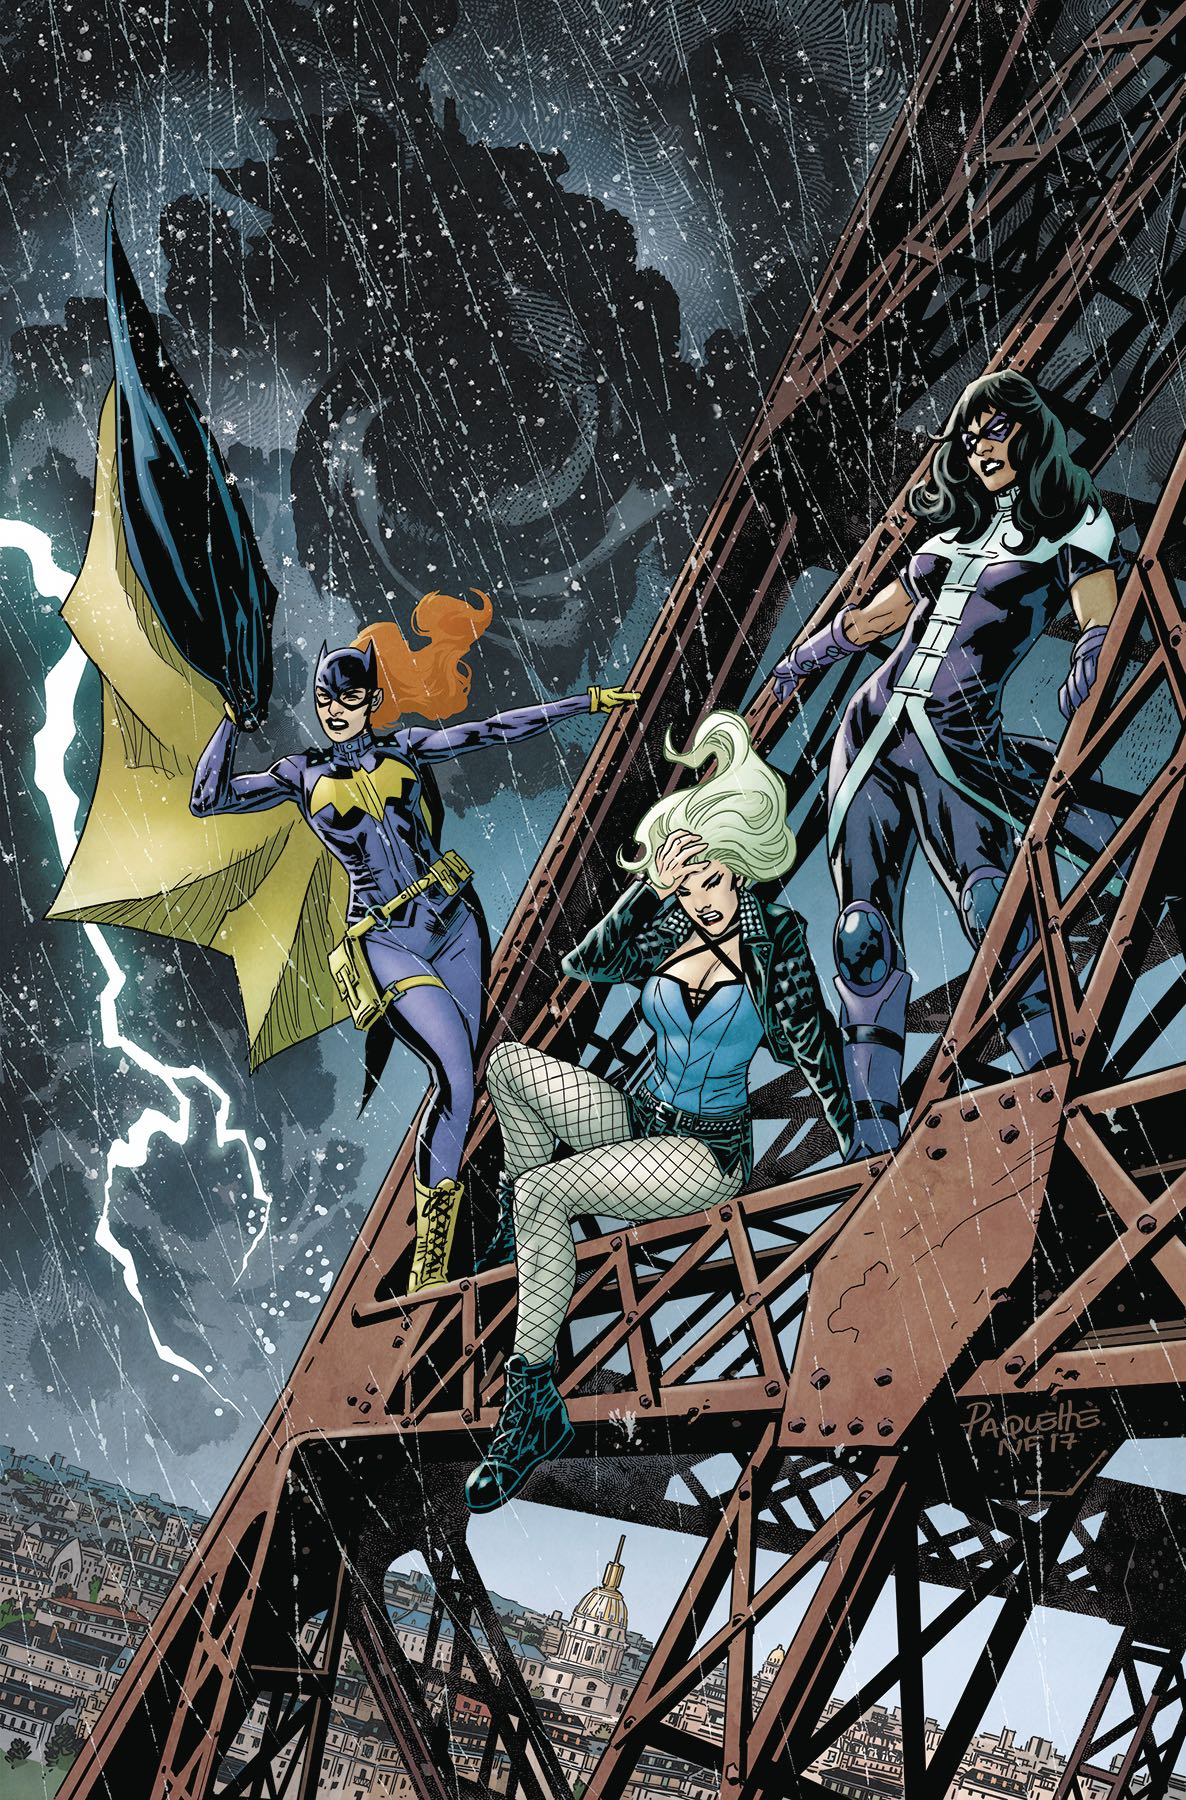 Episode 18 Cover of the Week! - (DC) Batgirl and the Birds of Prey #18Cover by Yanick PaquetteWritten by Shawna Benson and Julie BensonIllustrated by Marcio TakaraDid the Content Match the Drapes? - No